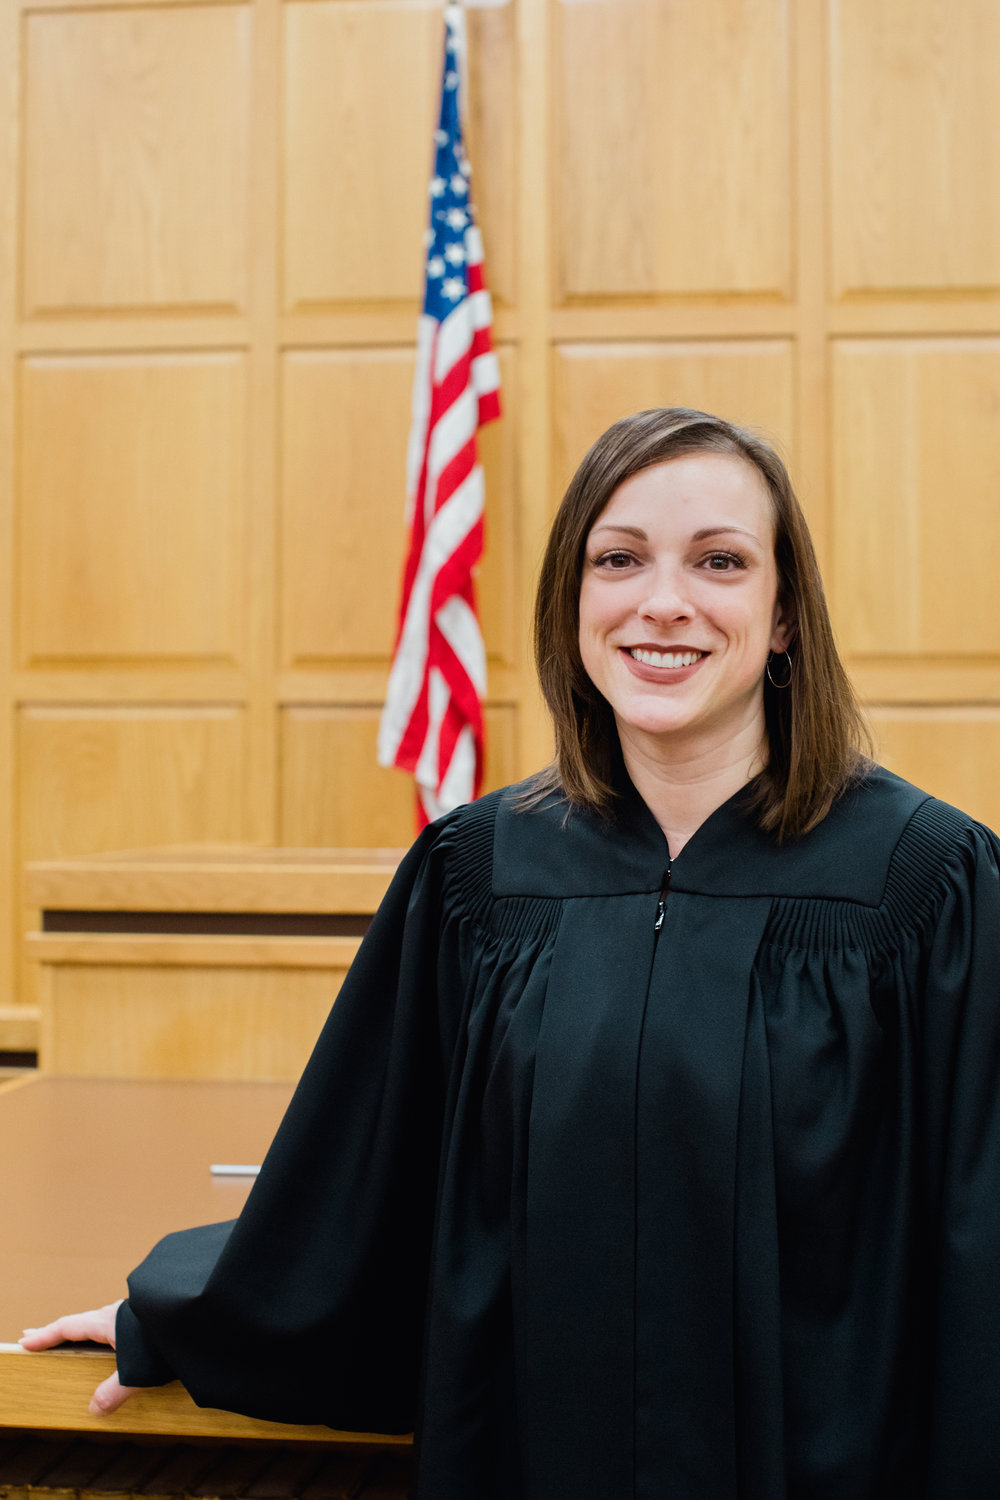 - Judge Ferrera is uniquely qualified, firmly committed, honest and fair –and highly endorsed.